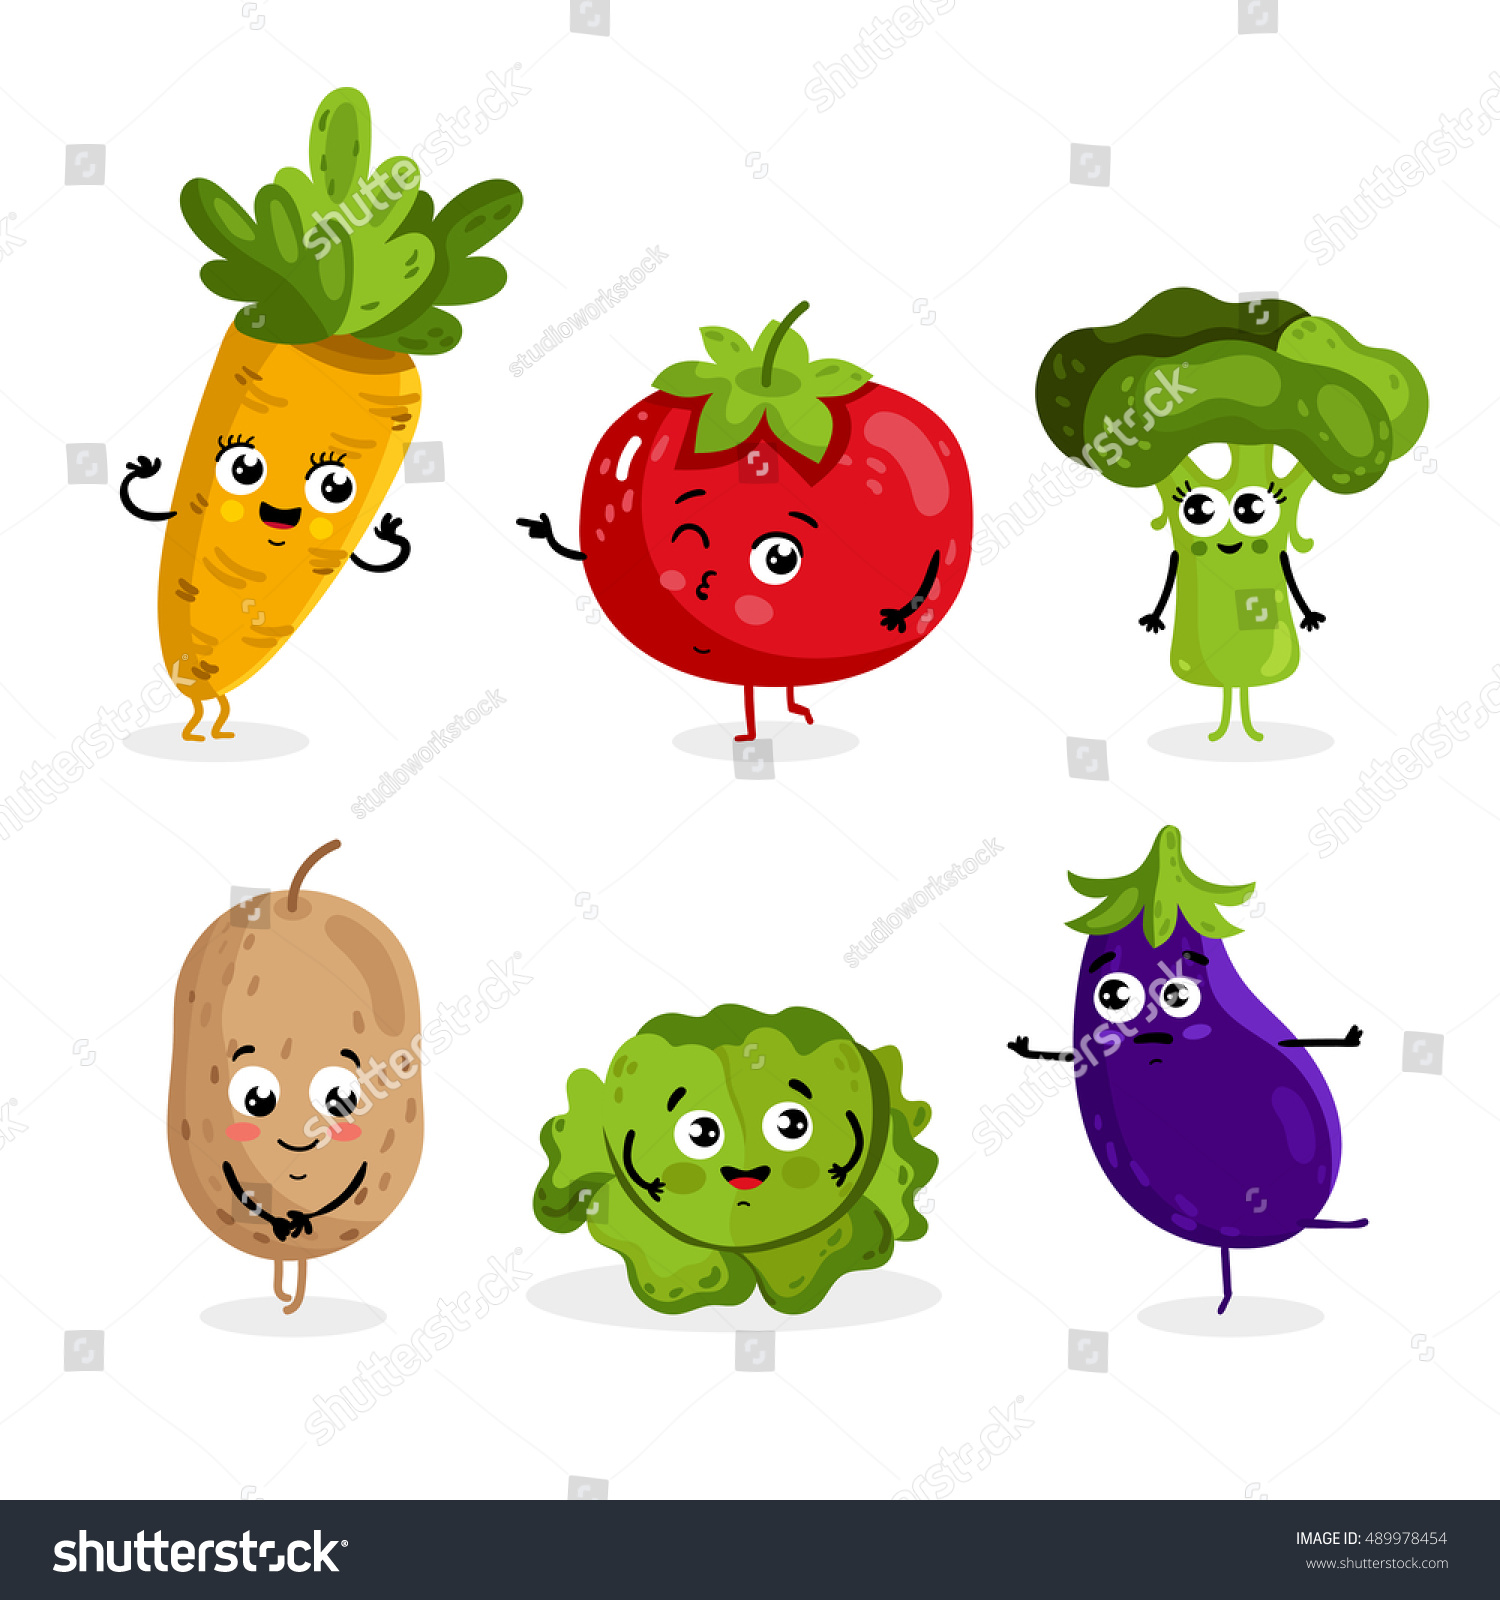 Cartoon vegetable cute characters face isolated on white background vector illustration. Funny vegetable face icon vector collection. Cartoon face food emoji. Vegetable emoticon. Funny food concept. #489978454